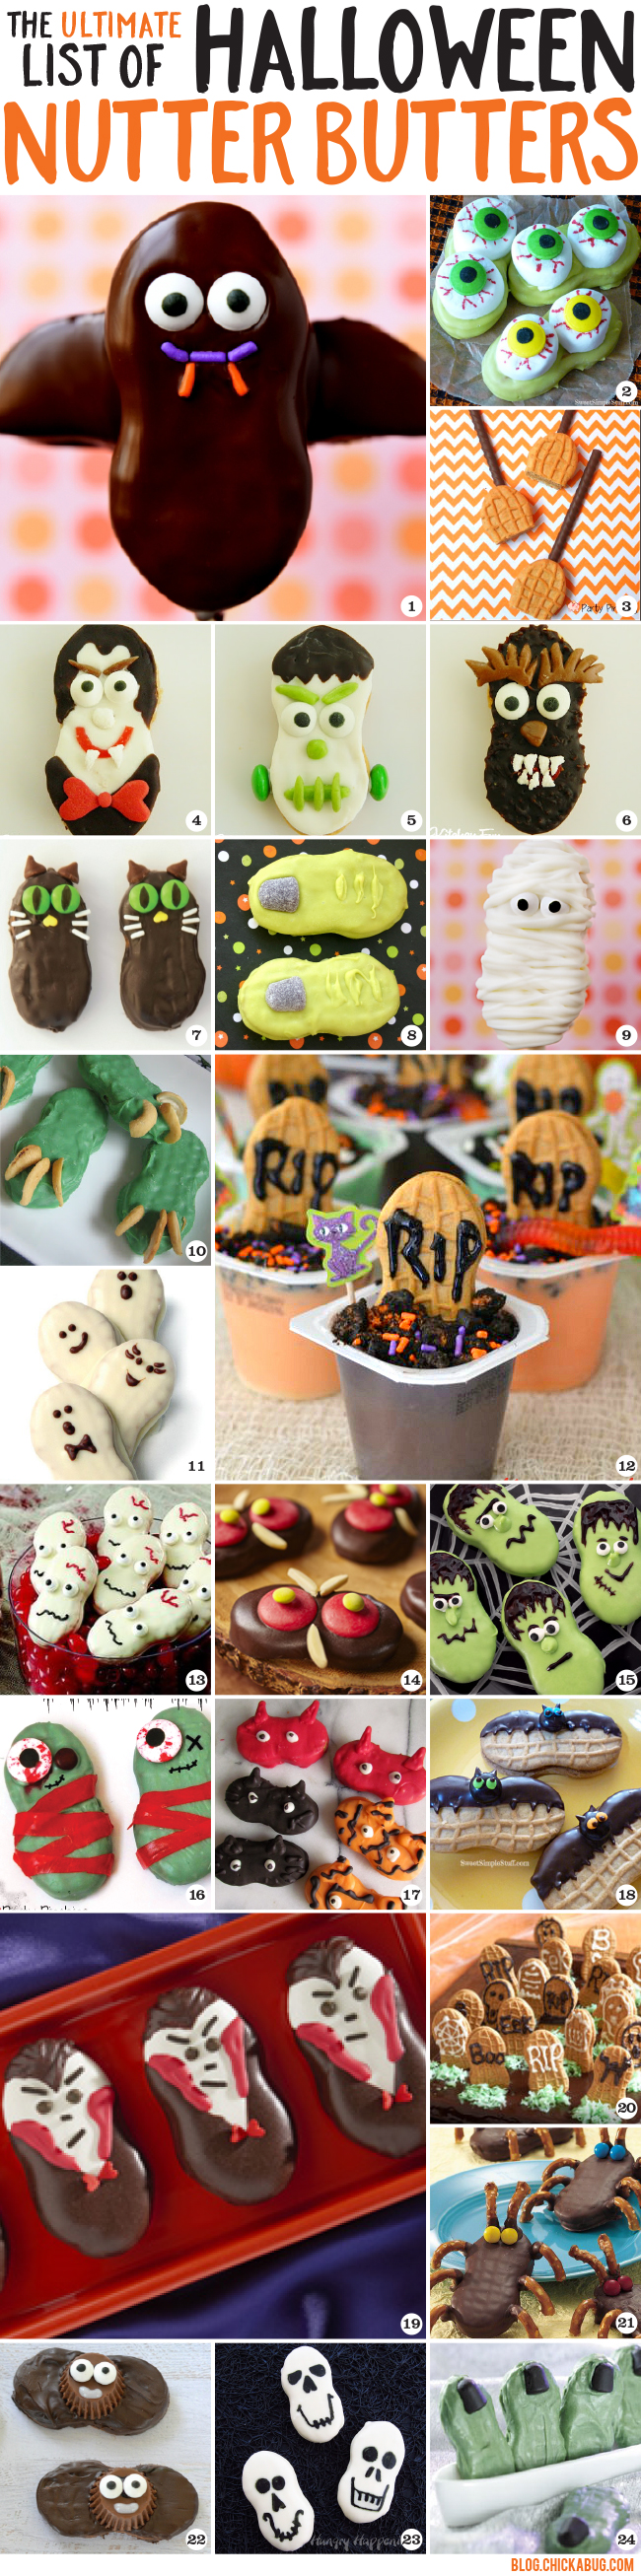 The ultimate list of Halloween Nutter Butters! Awesome Halloween cookie decorating ideas that all start with a simple Nutter Butter. LOVE!